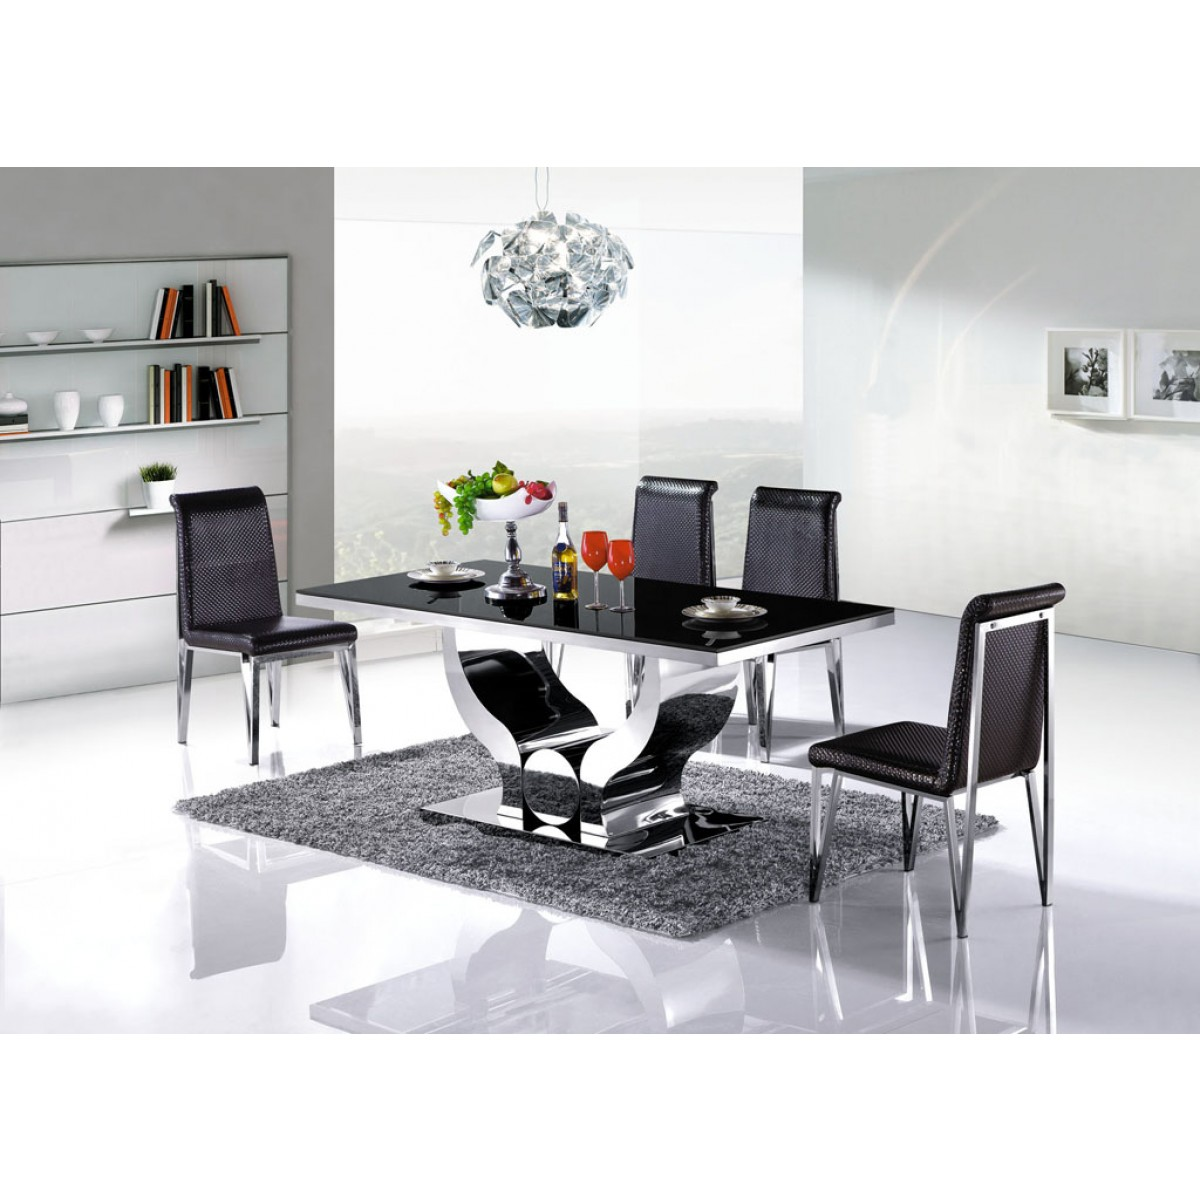 Table de salle manger en inox nova pop for Table de salle a manger design scandinave vispa